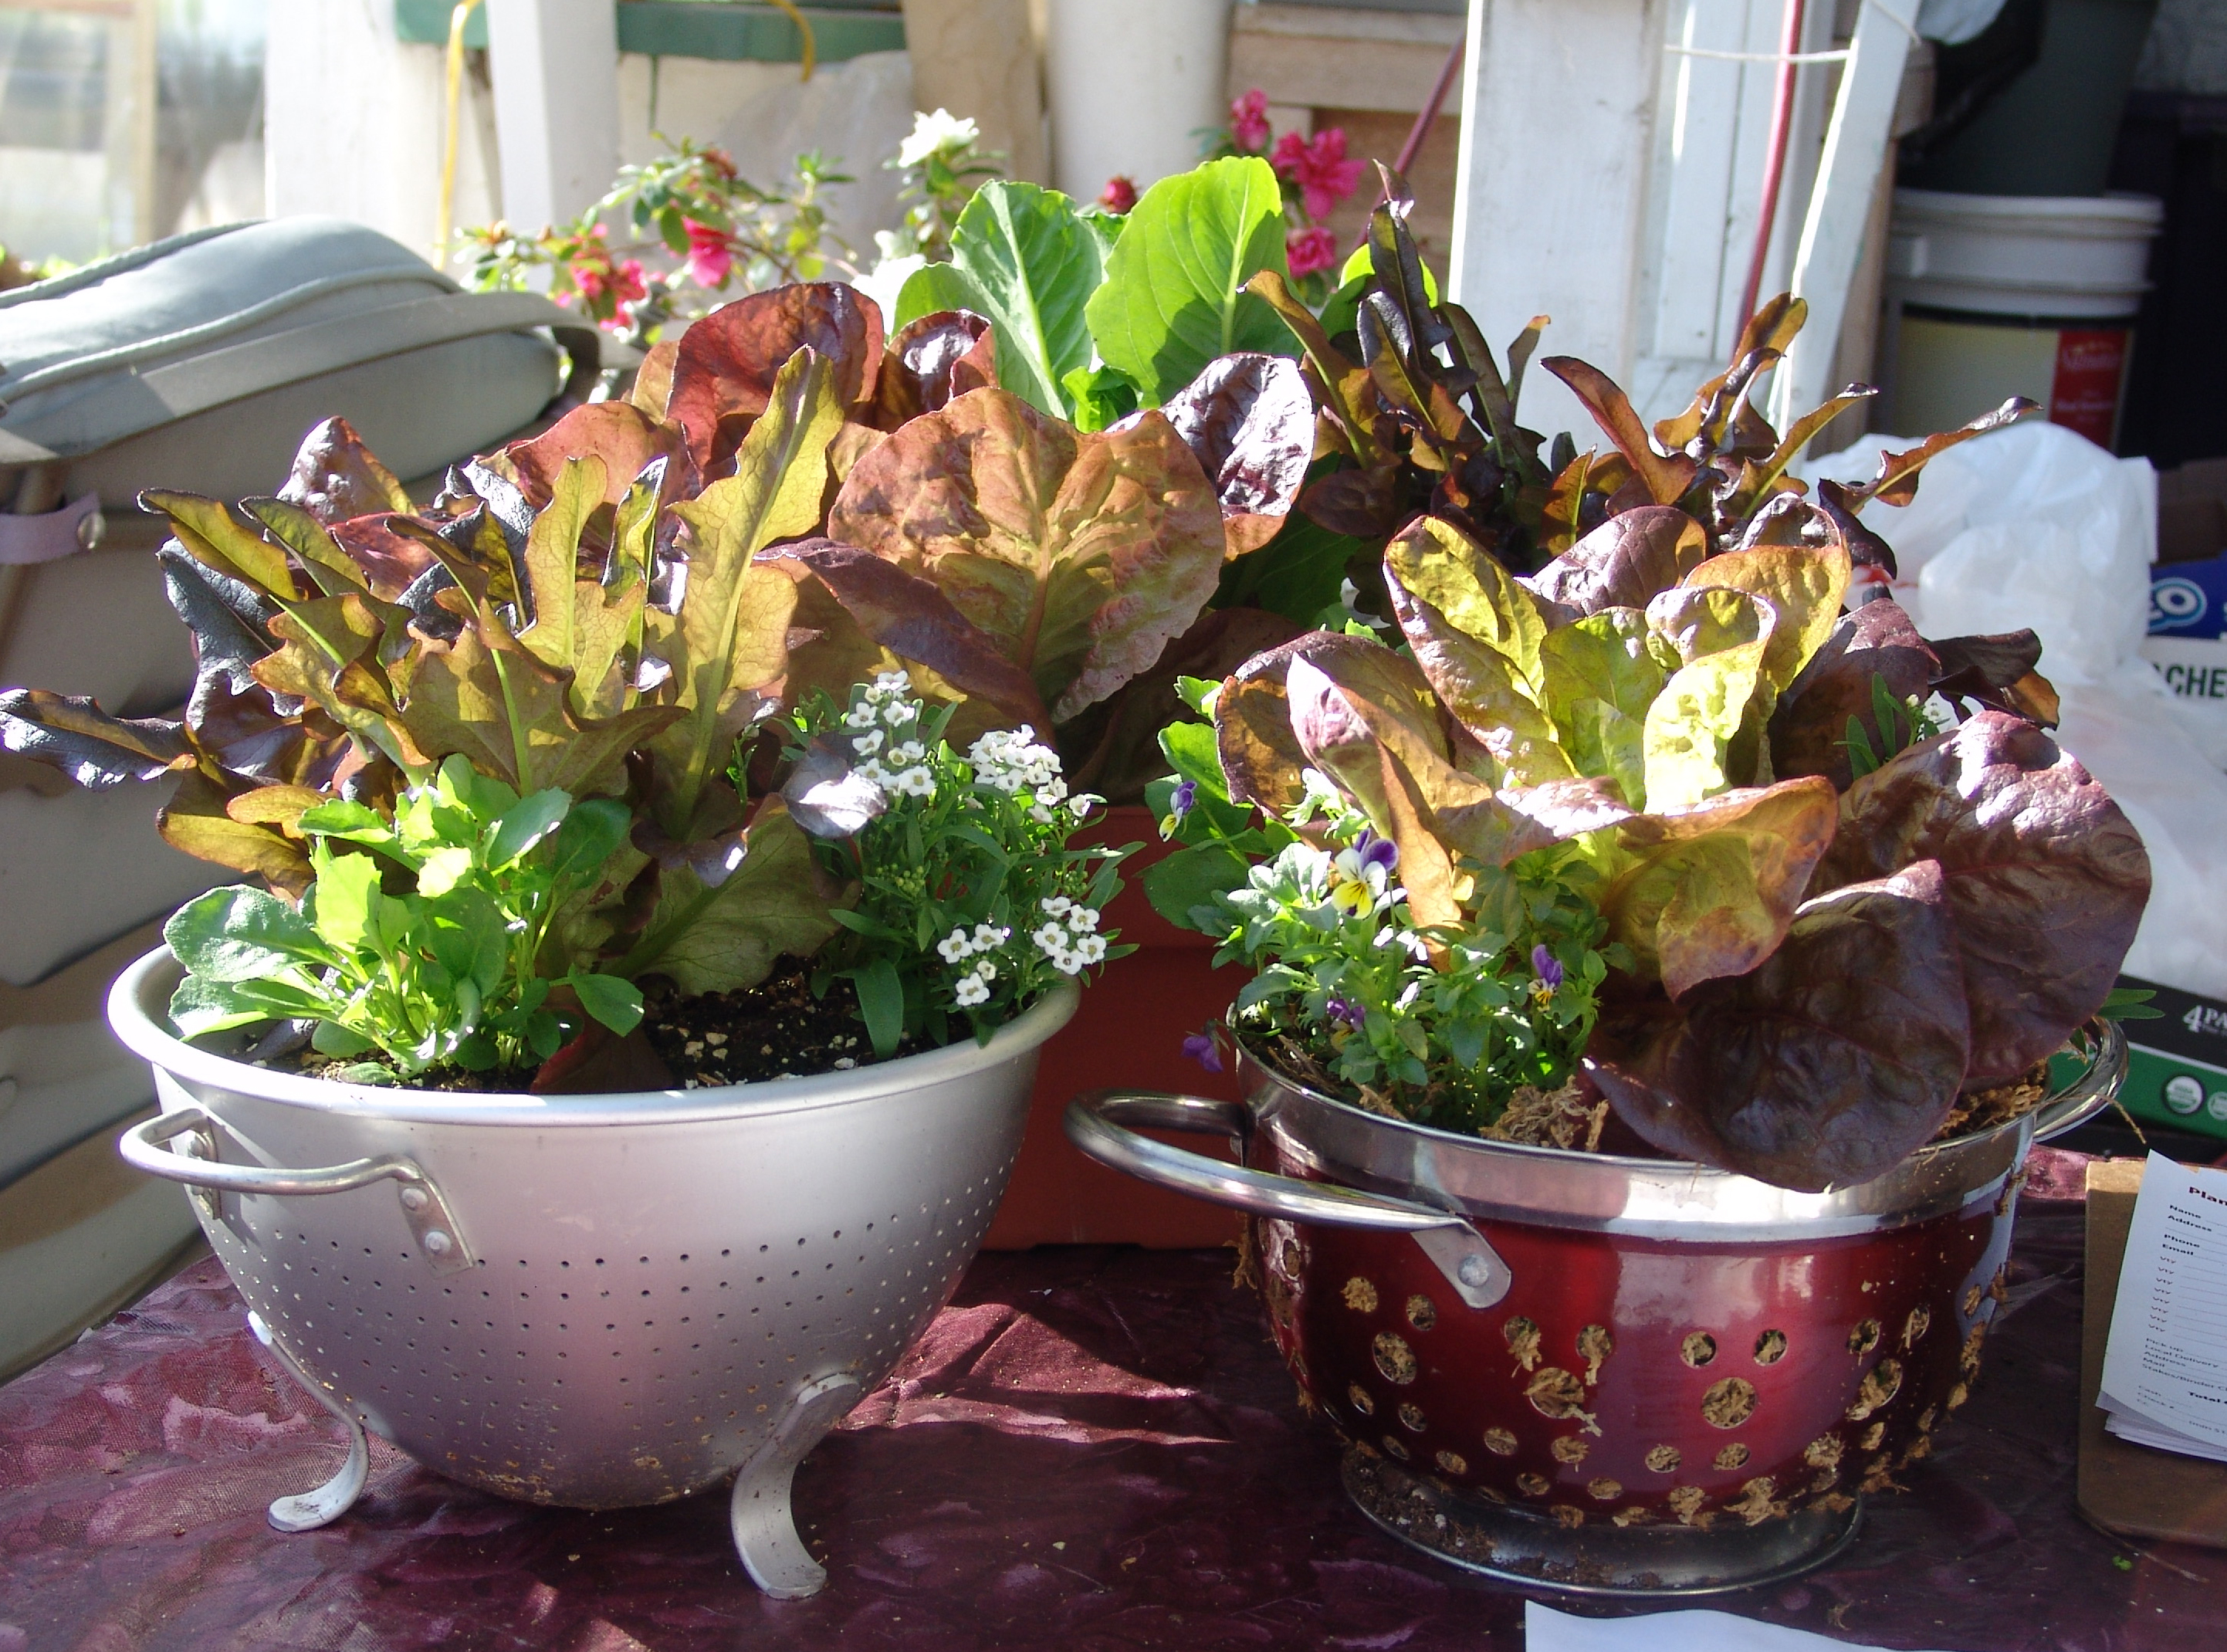 salad bowl pictures - 2